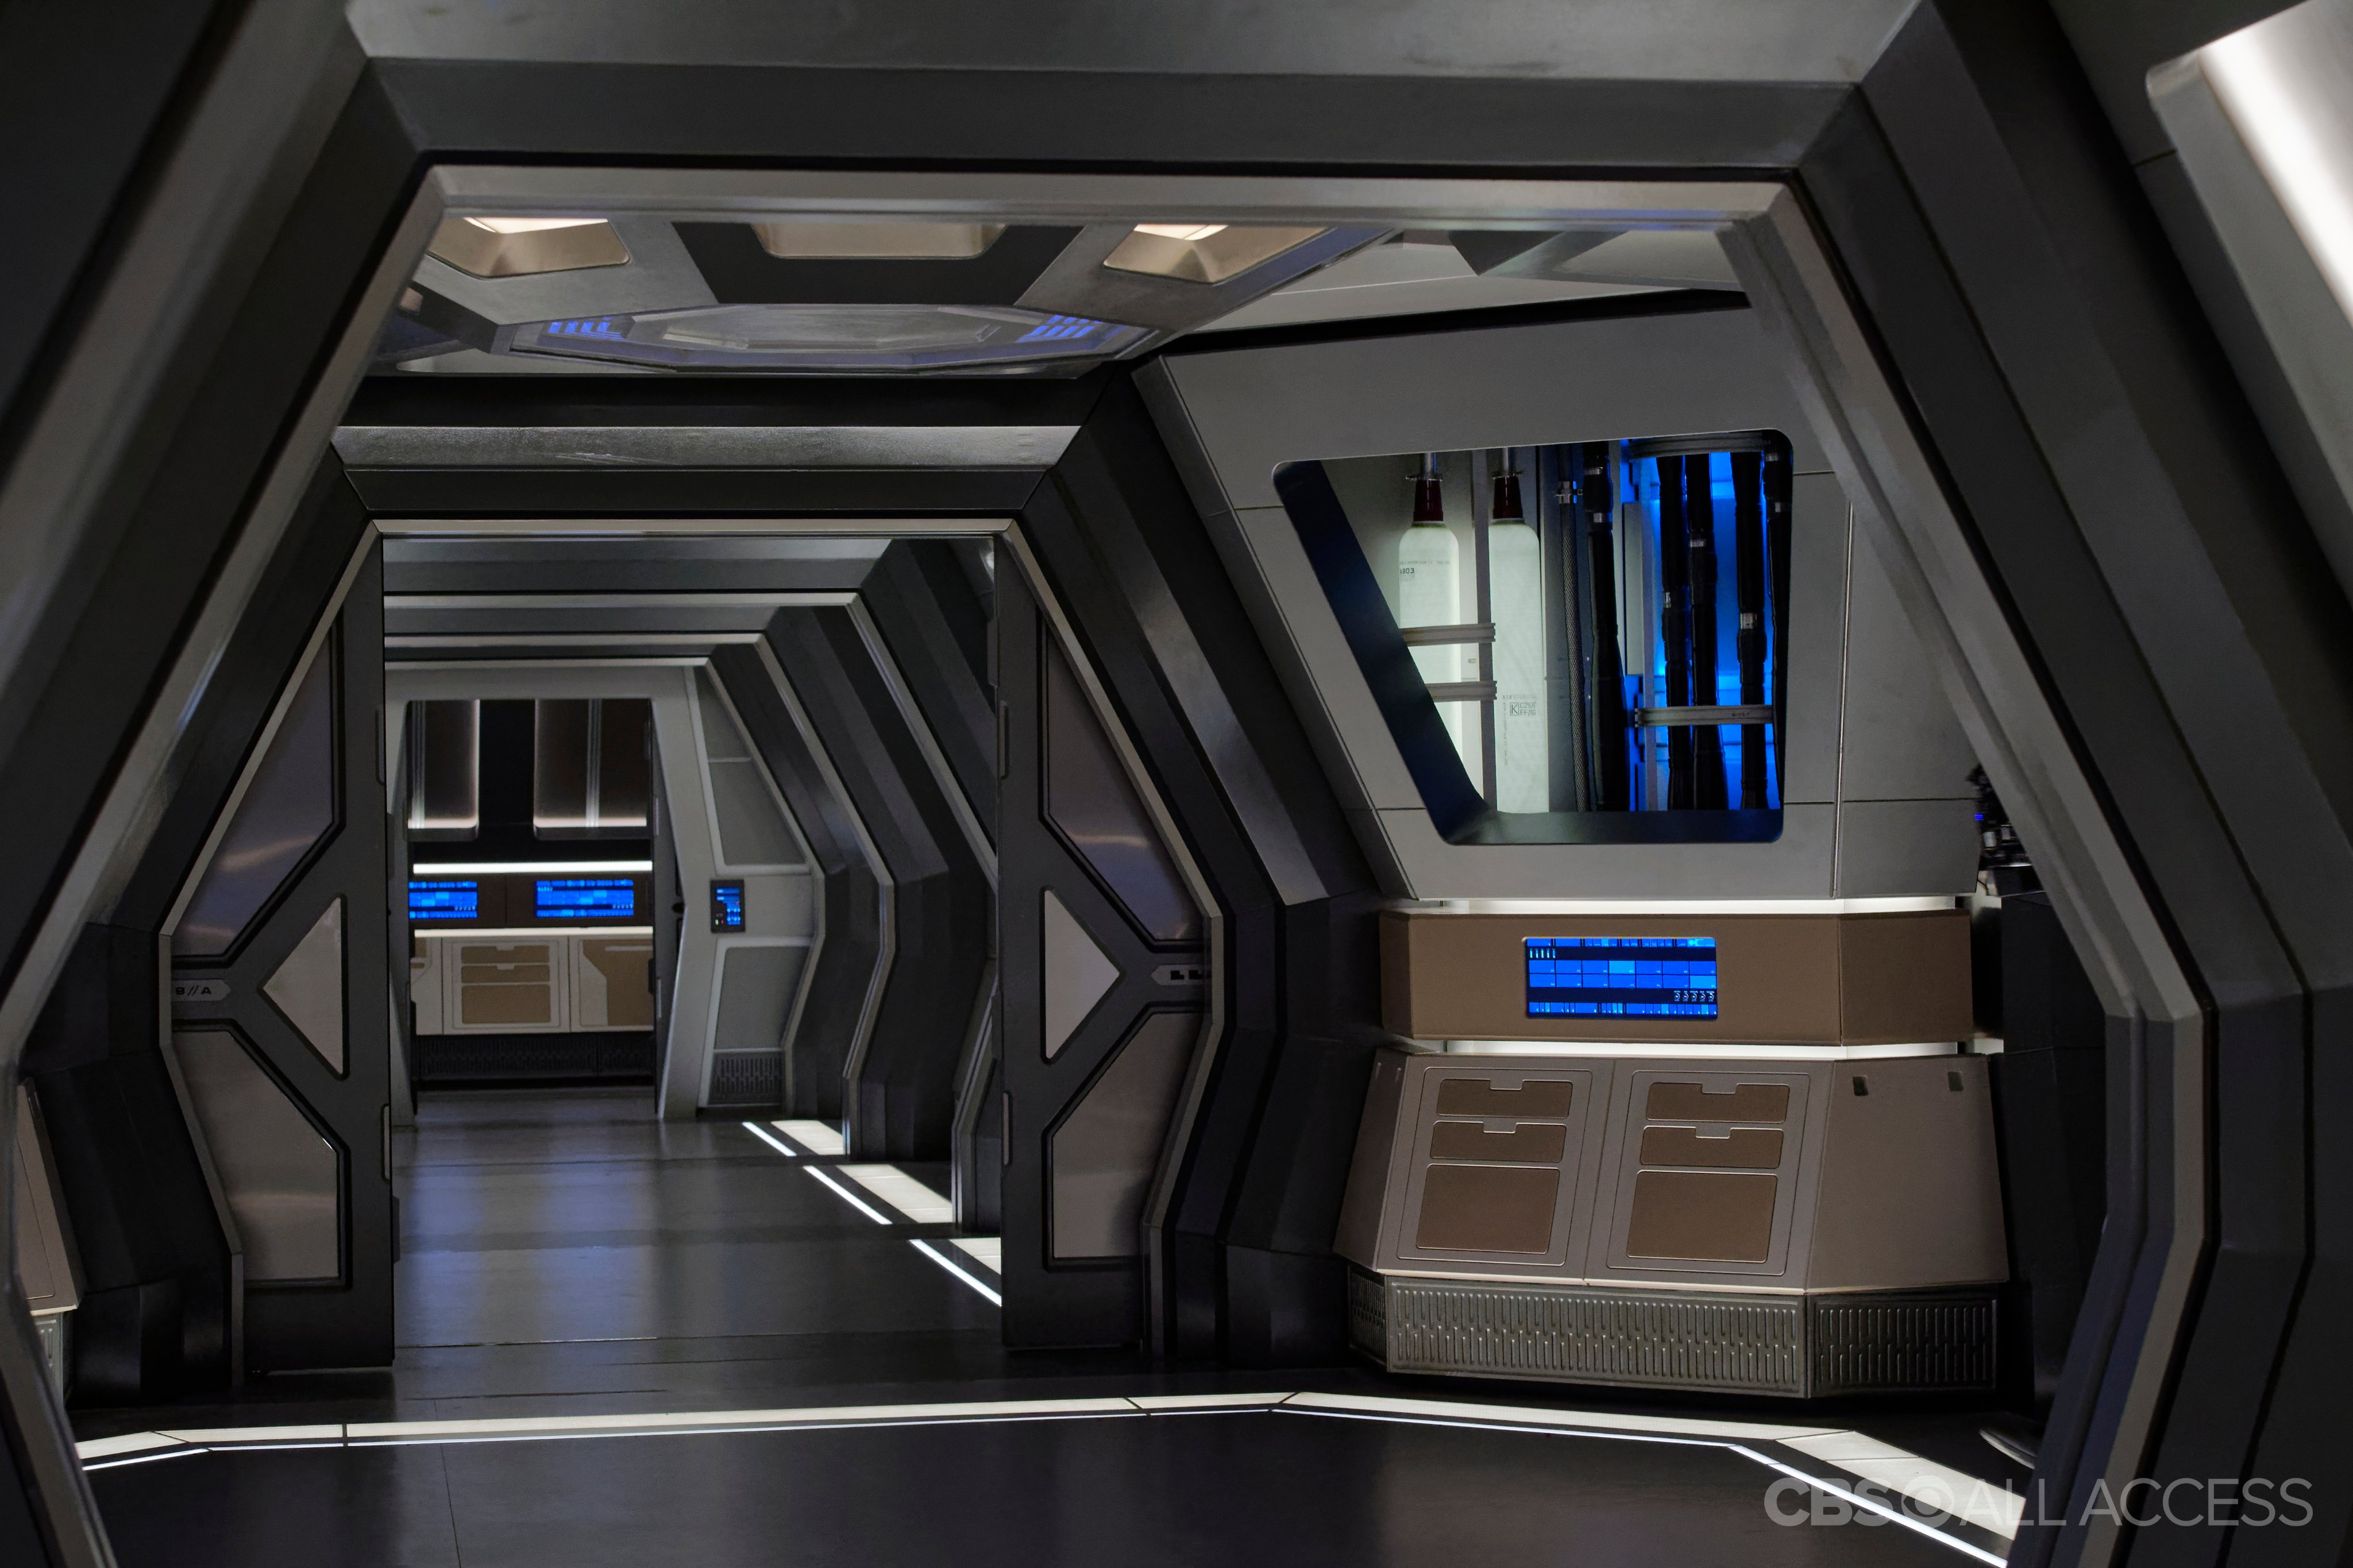 Star Trek Discovery - Hallway inside a spaceship